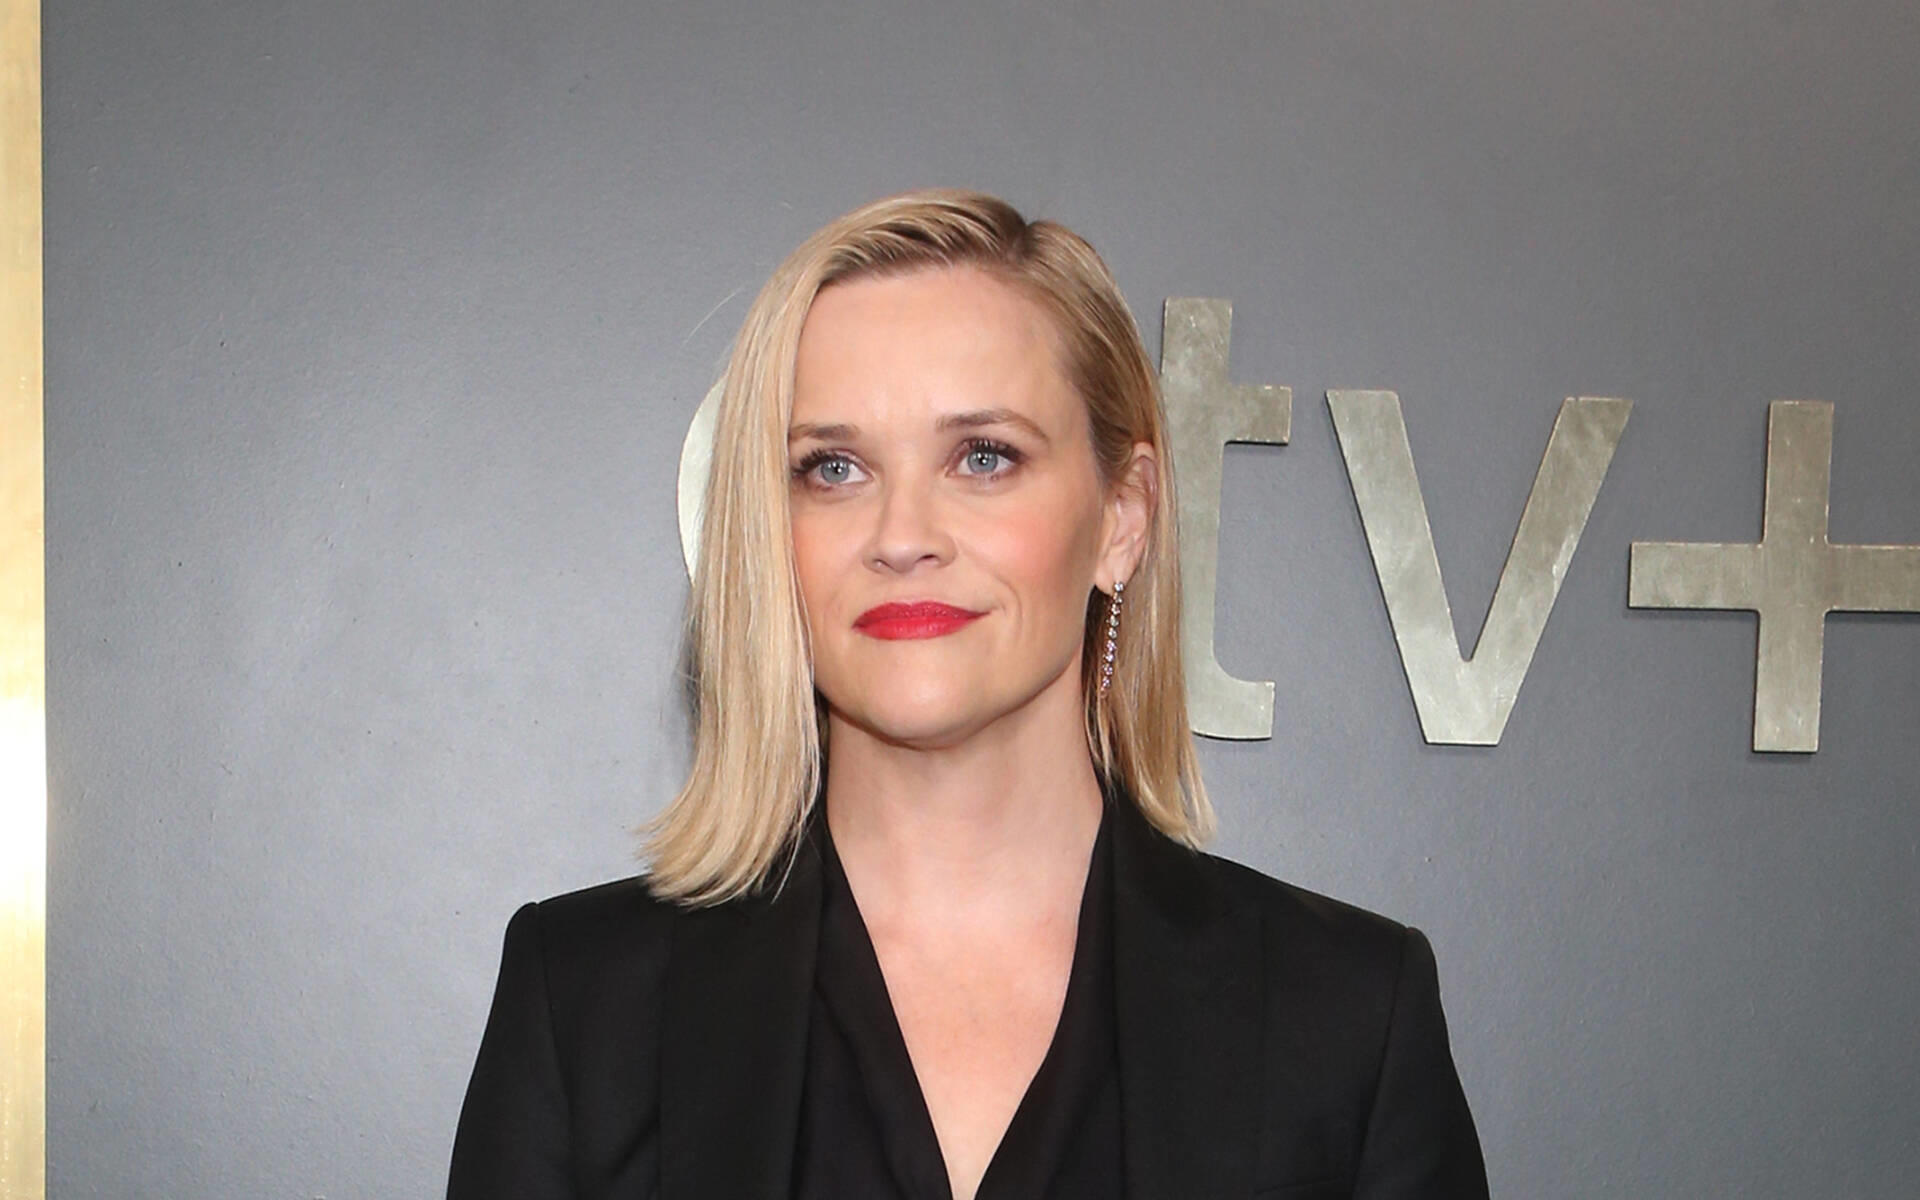 Reese Witherspoon: Eine Million Dollar pro Folge